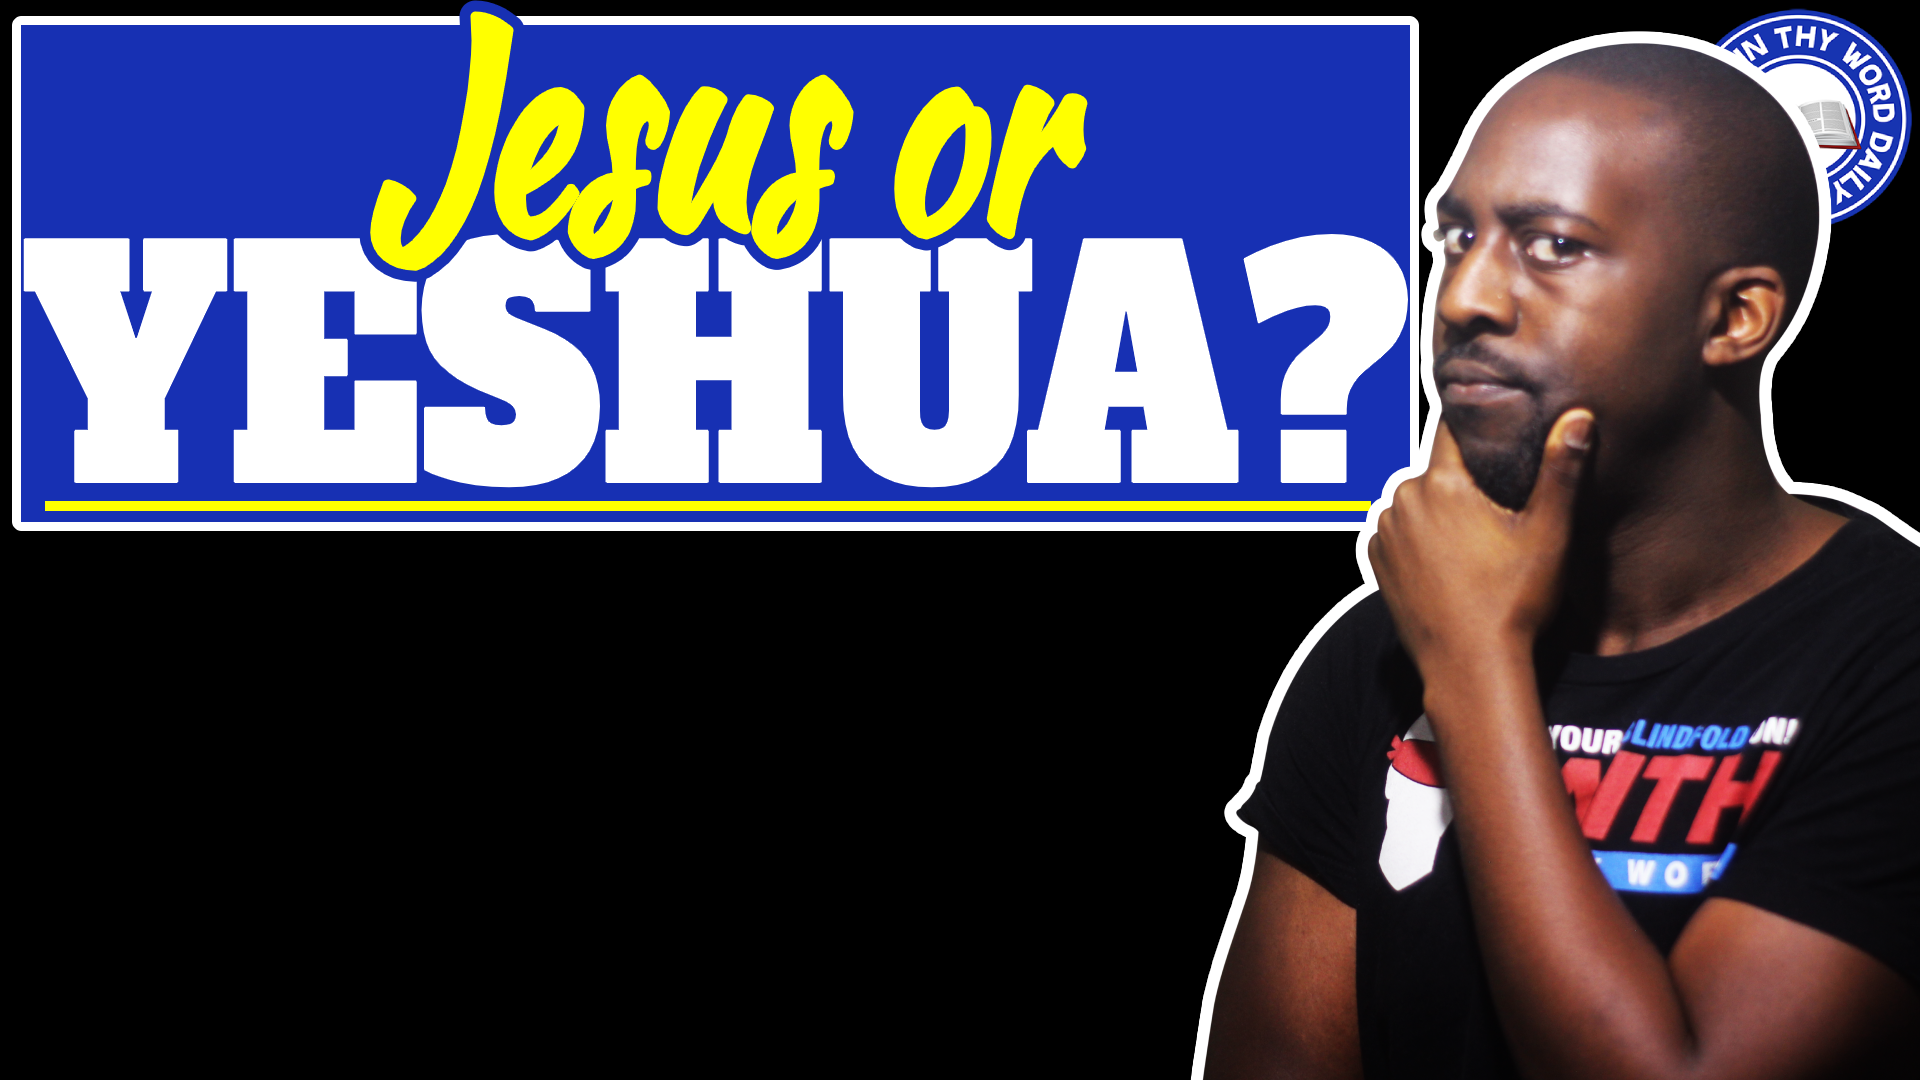 Jesus or Yeshua